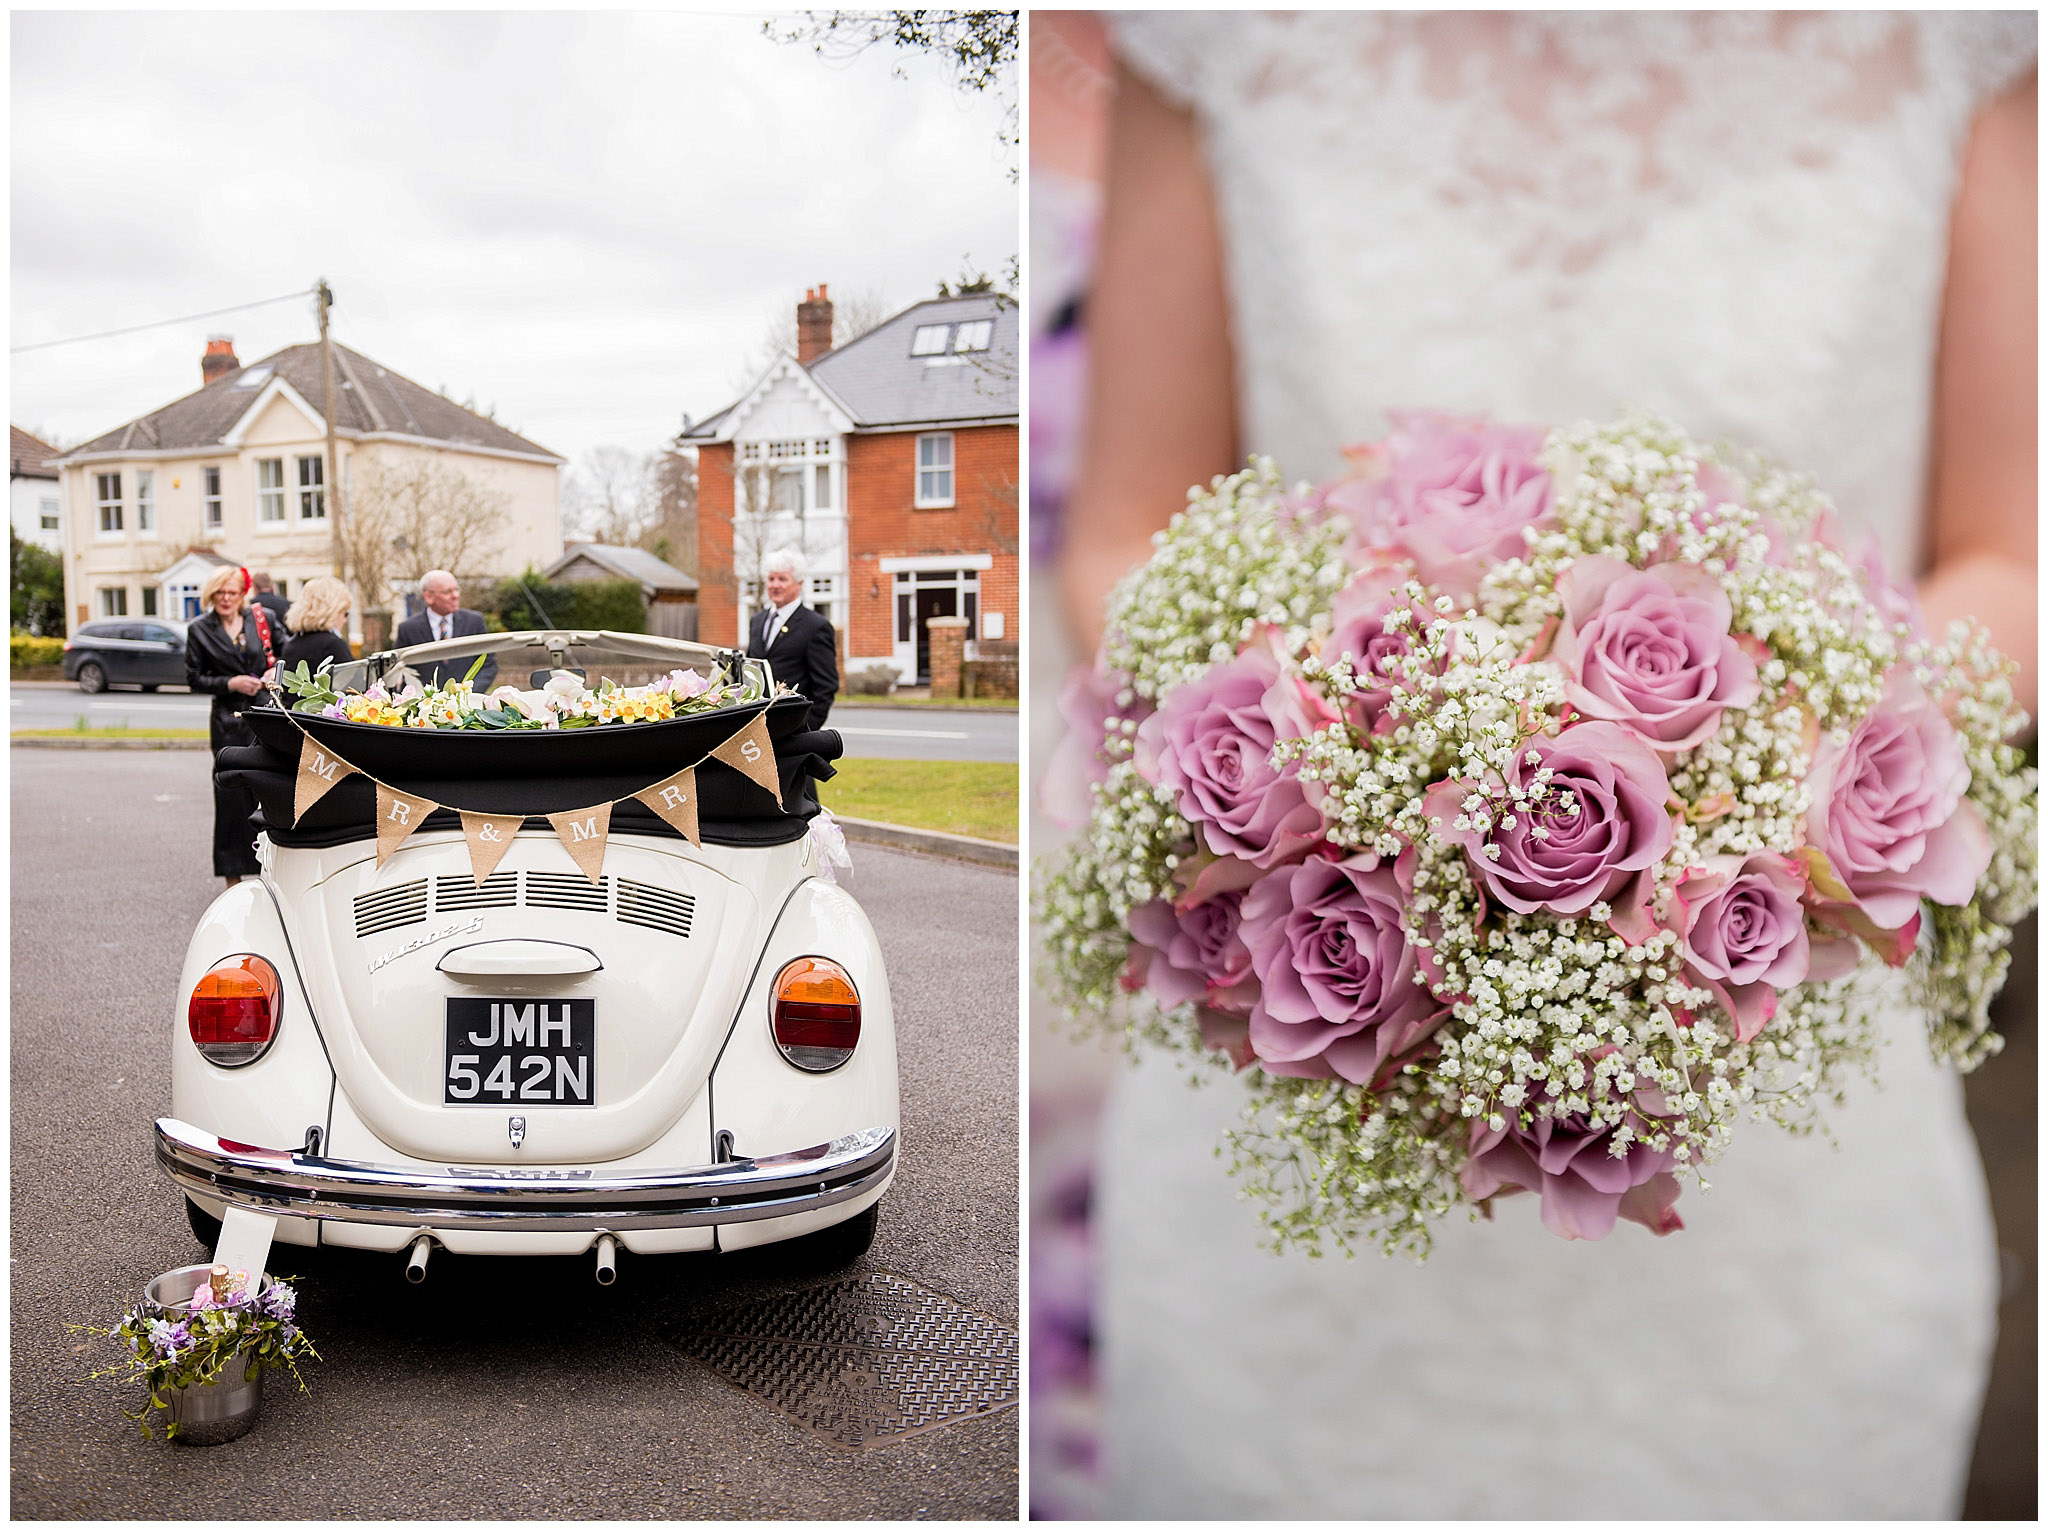 VW beetle wedding car, bride holding her bouquet